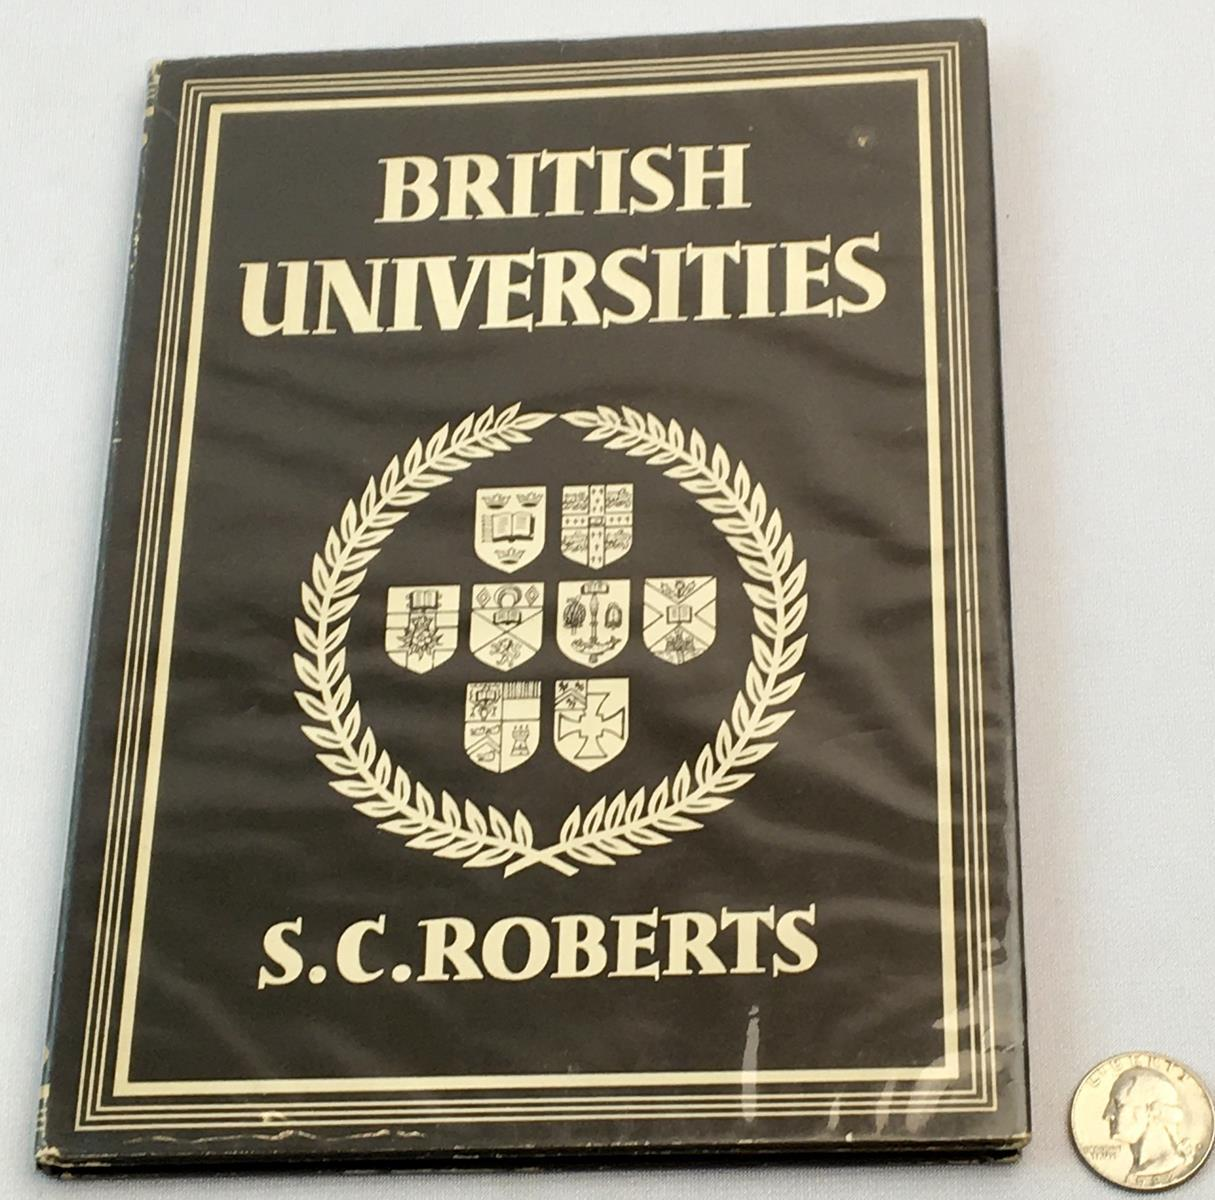 1946 British Universities by S. C. Roberts w/ Dust Jacket FIRST EDITION